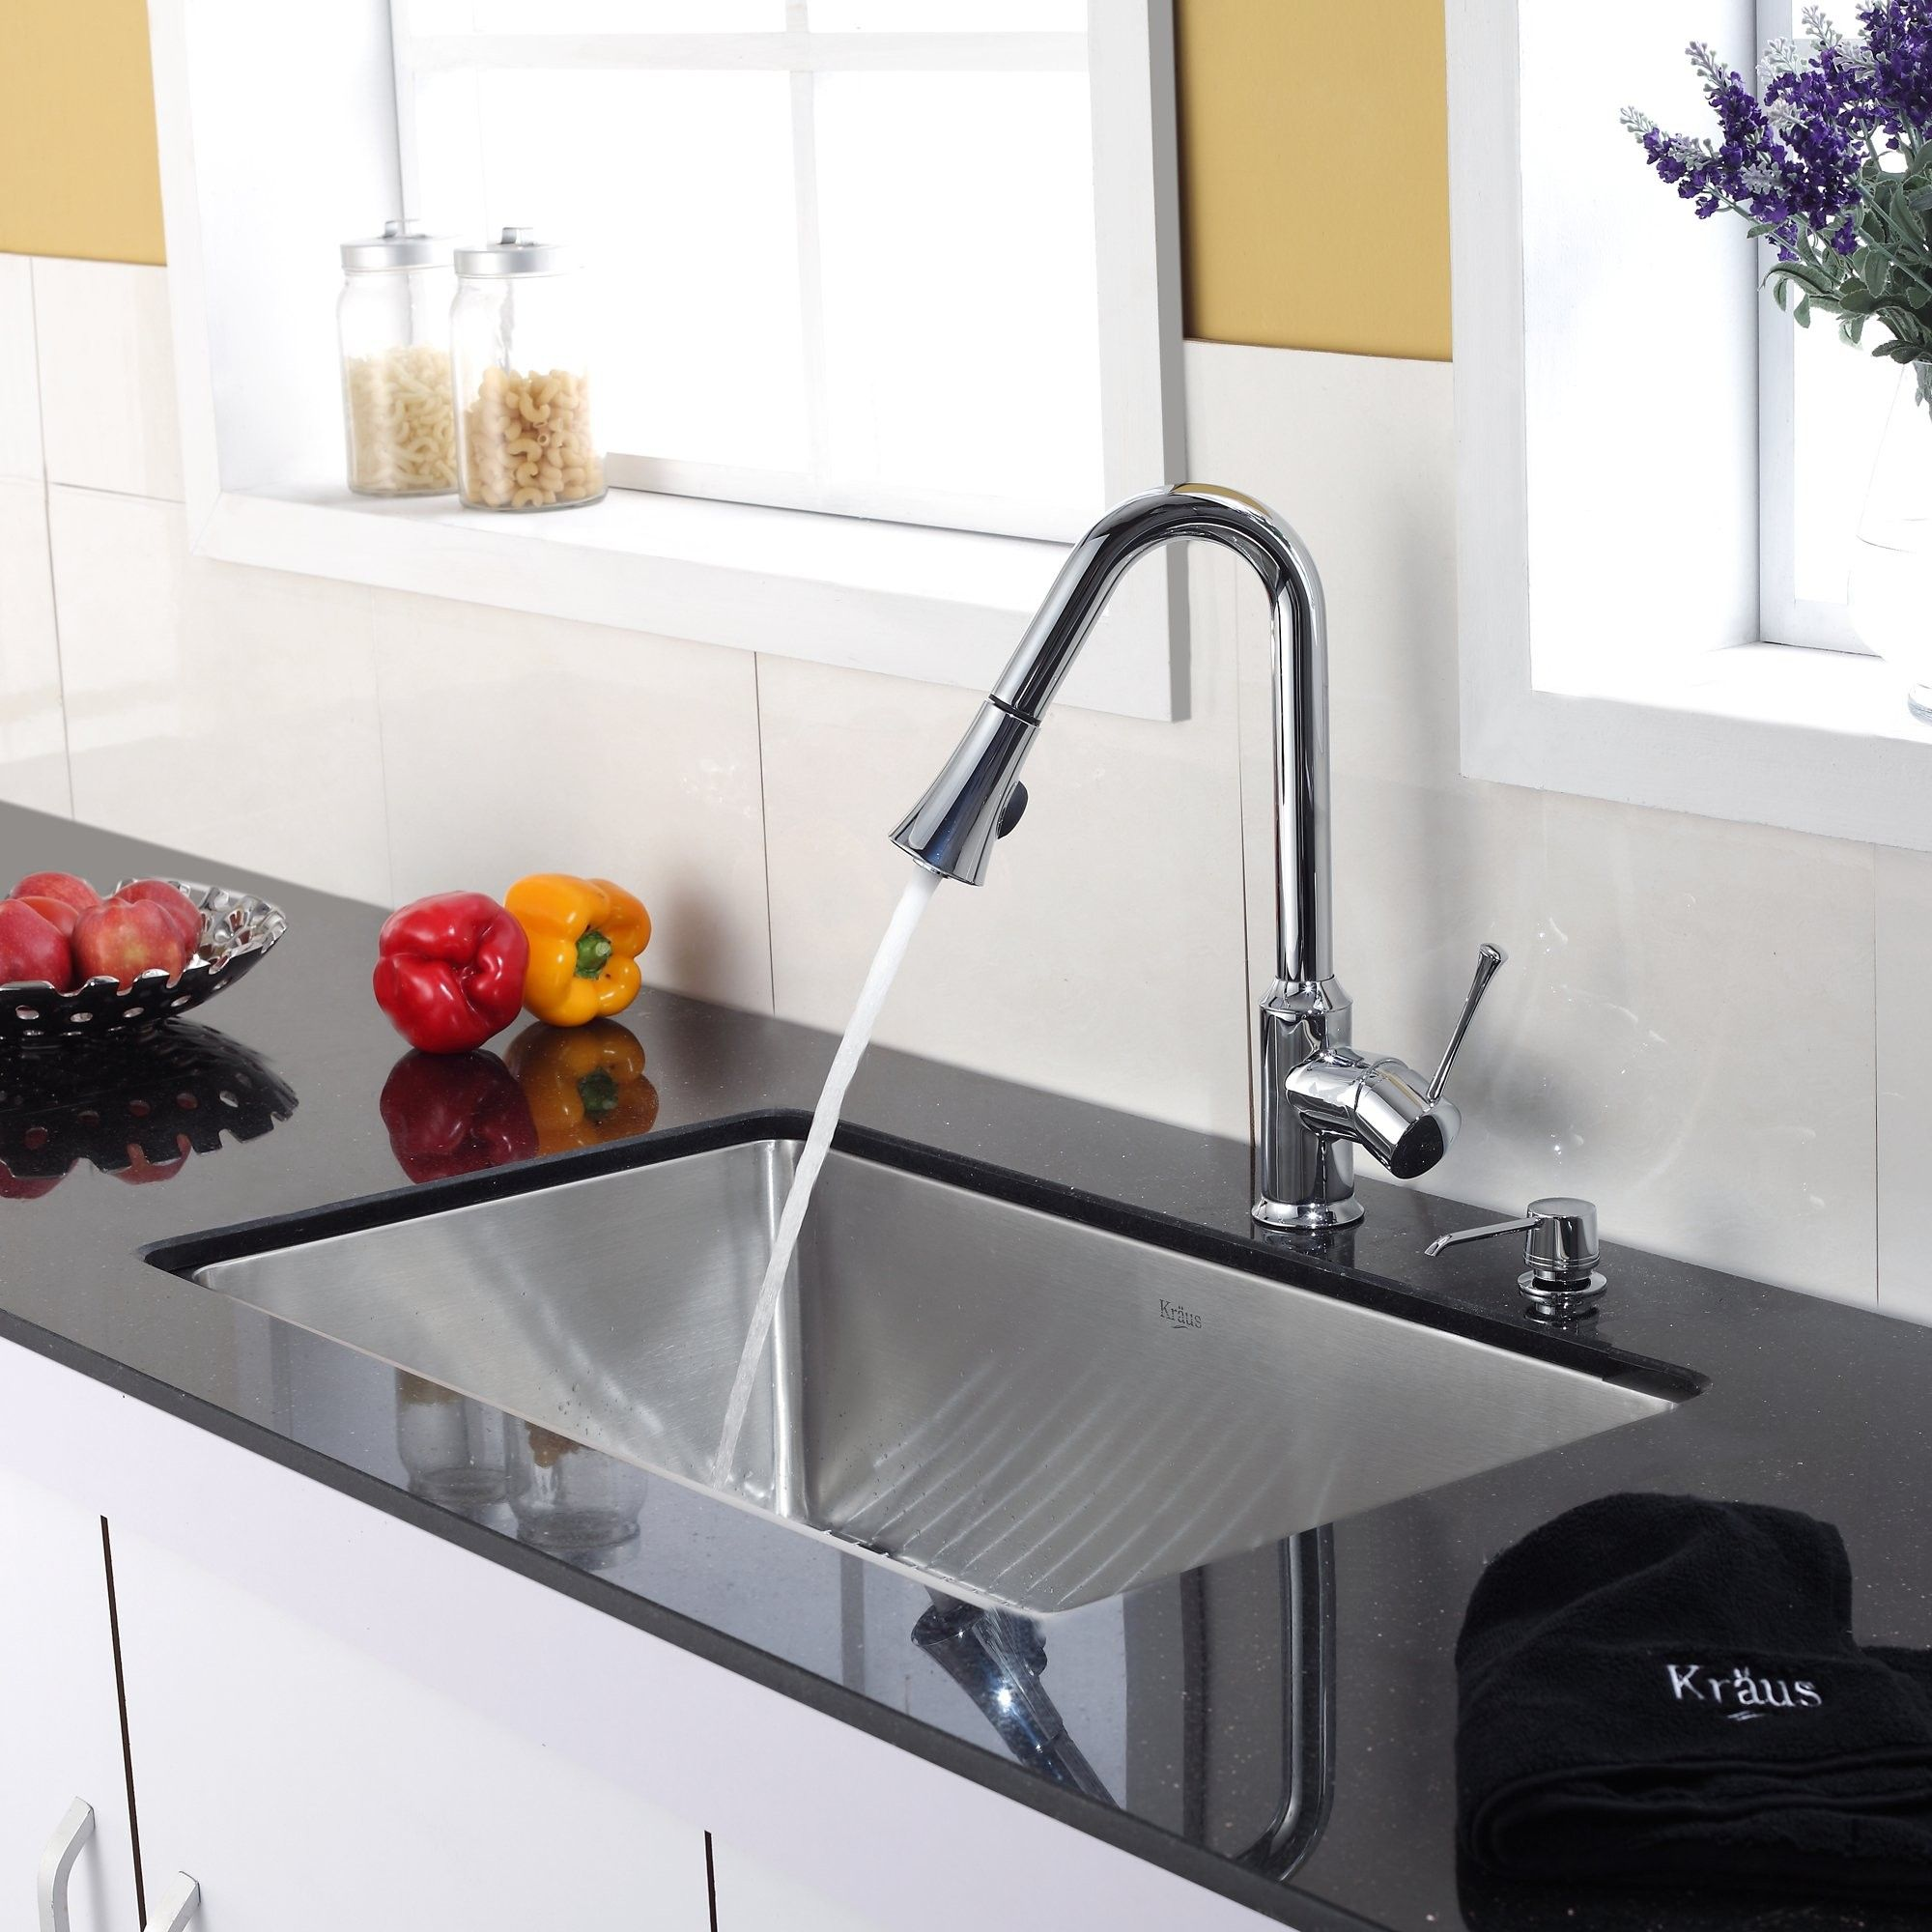 inspirational Unique Tall Kitchen Faucet kitchen sink faucets